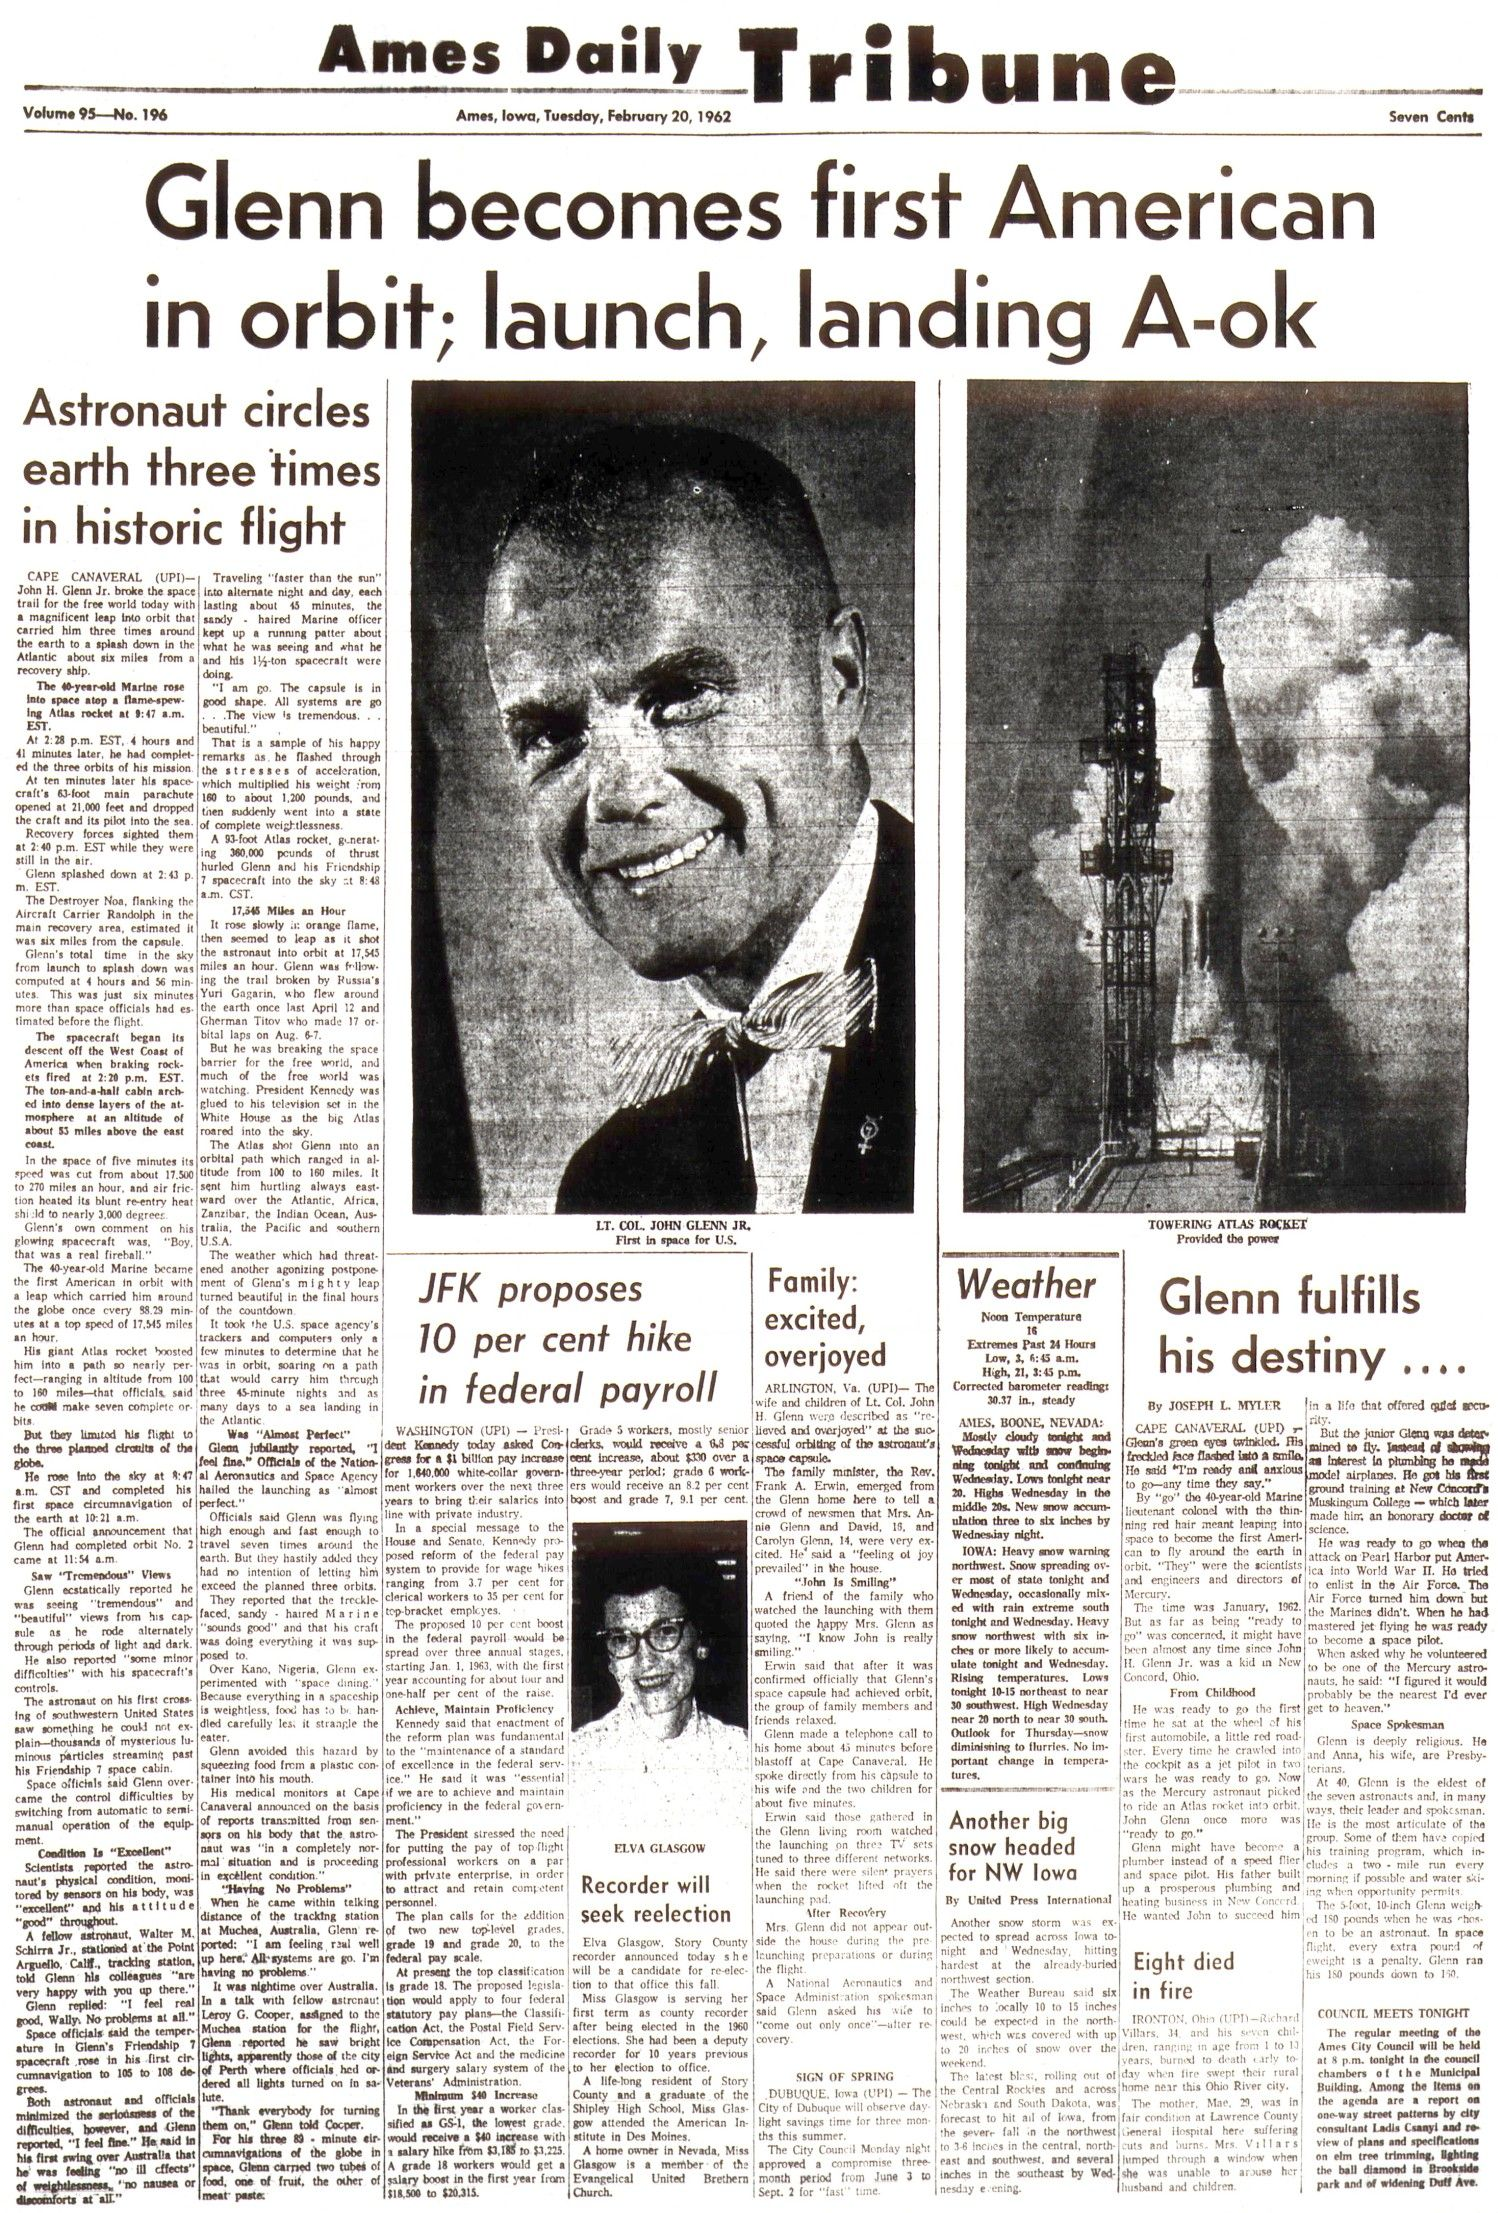 First Astronaut to Orbit Earth 1962 - Pics about space